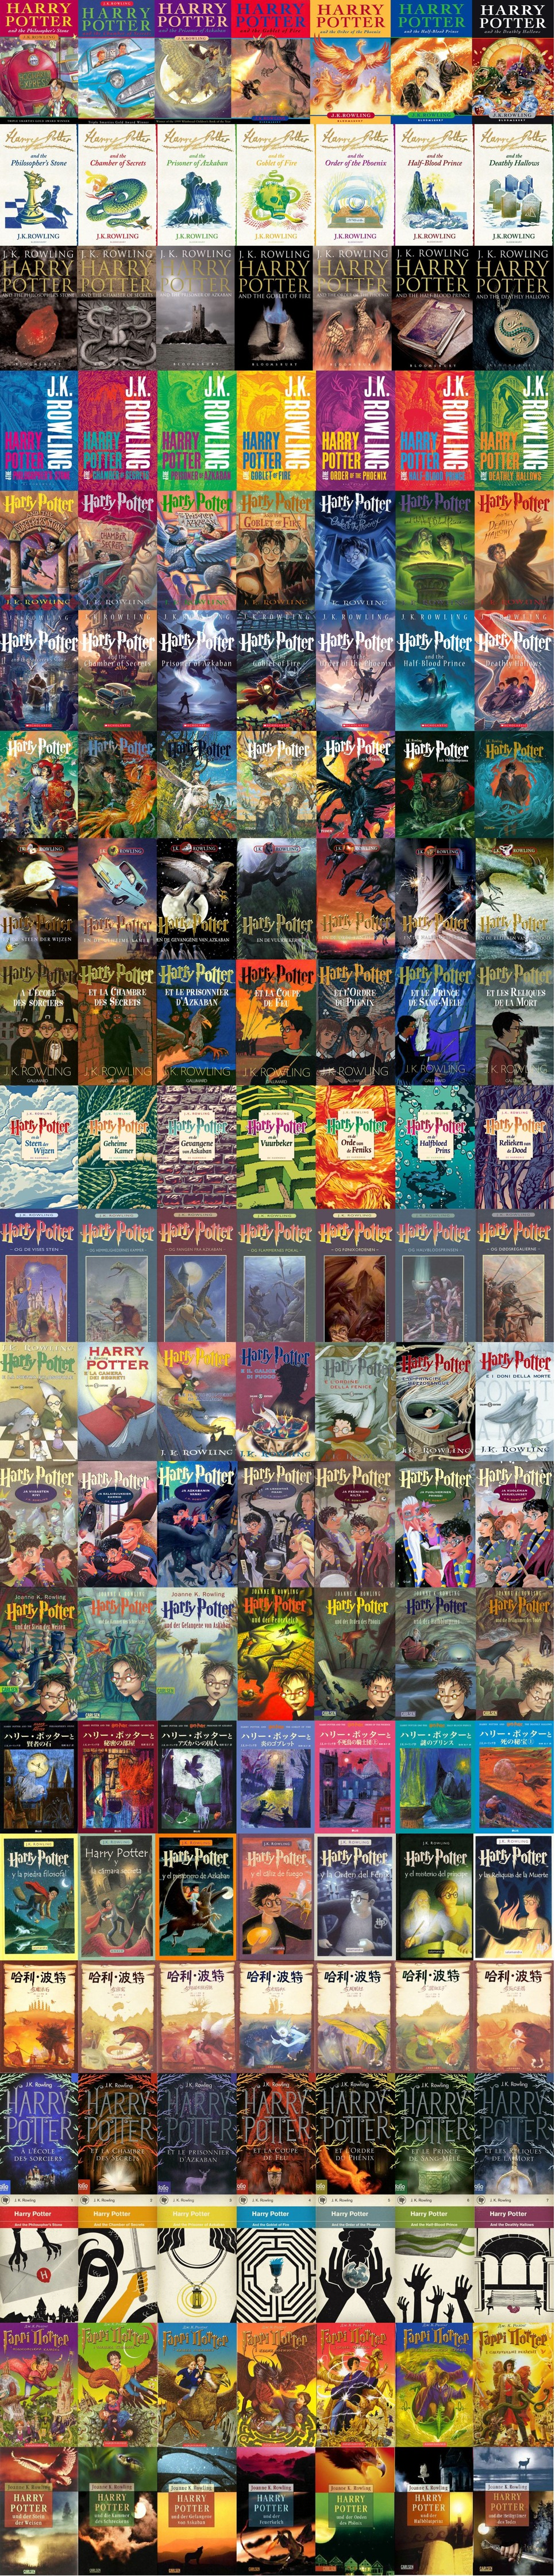 Harry Potter Book Cover Versions : Harry potter covers from around the world